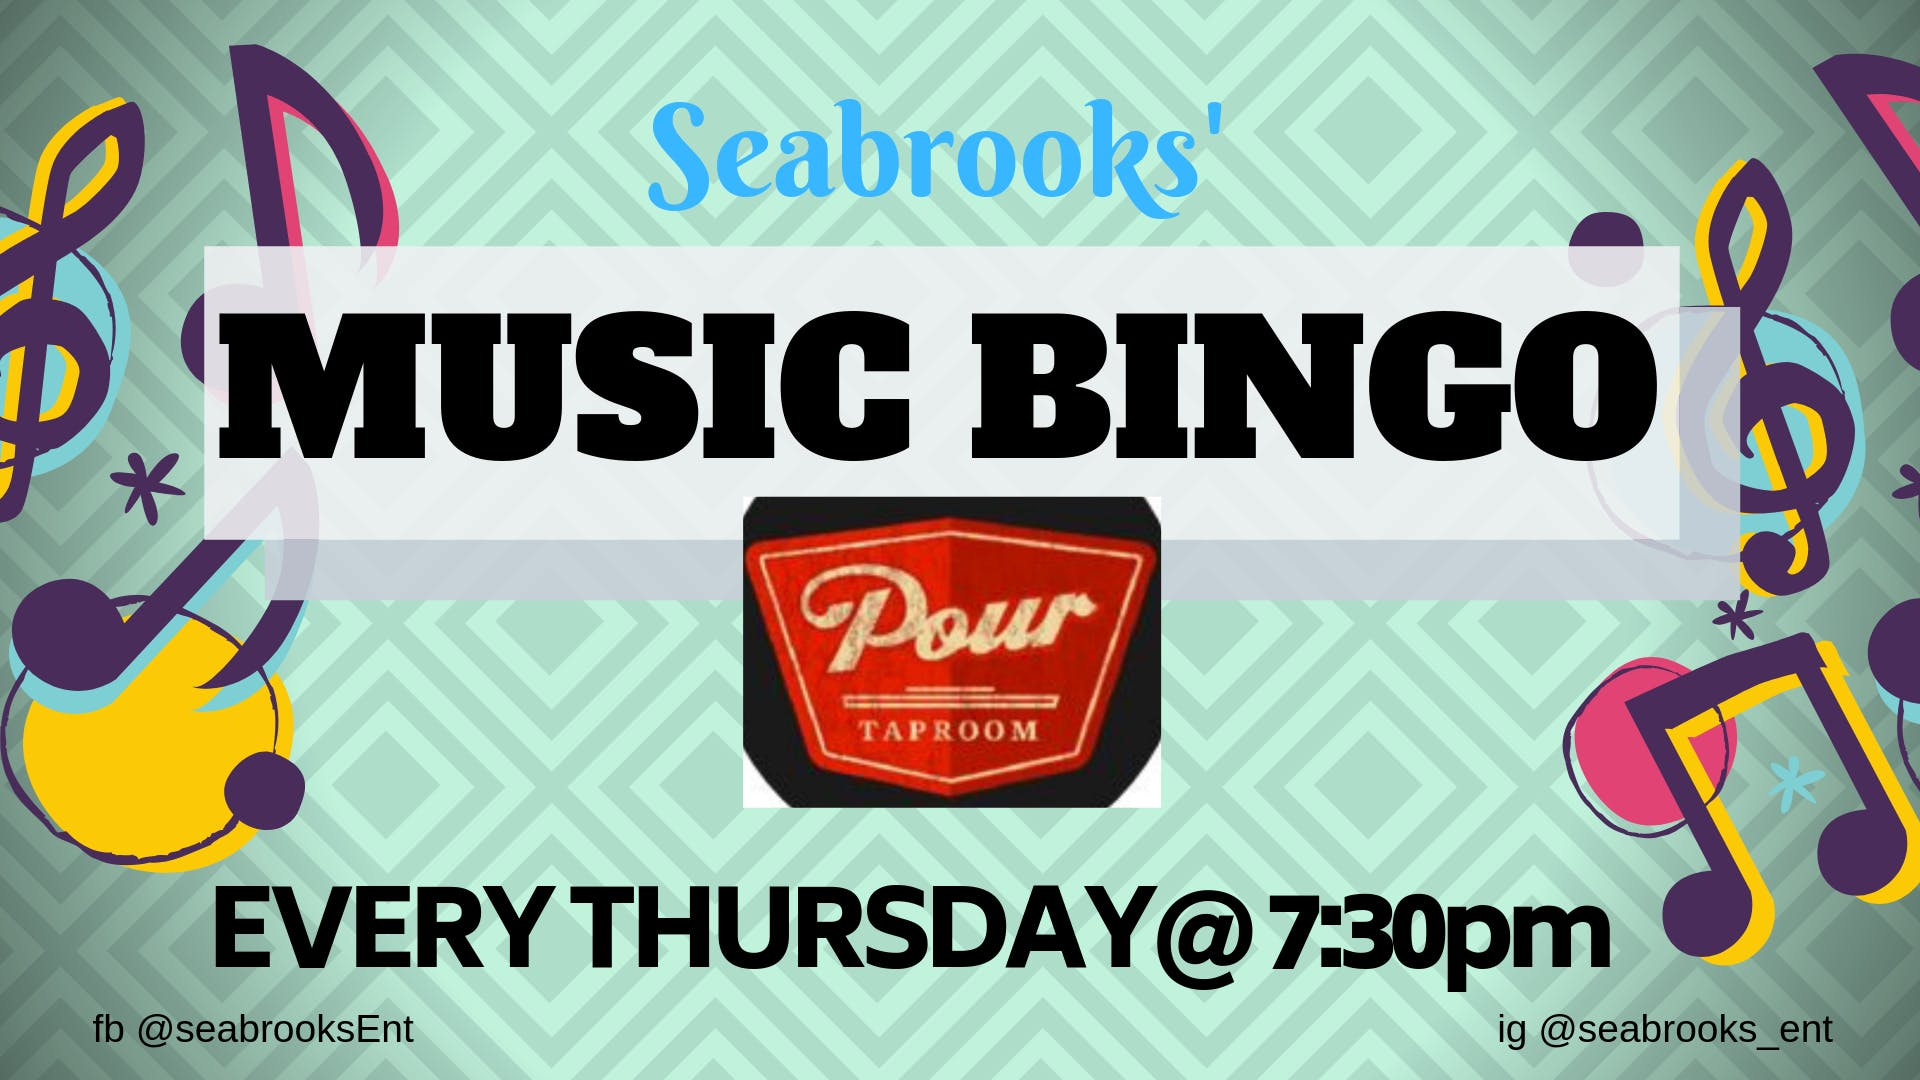 SEABROOKS MUSIC BINGO! FREE, AWESOME MUSIC, DOPE PRIZES,GRAHAM ST PUB :))